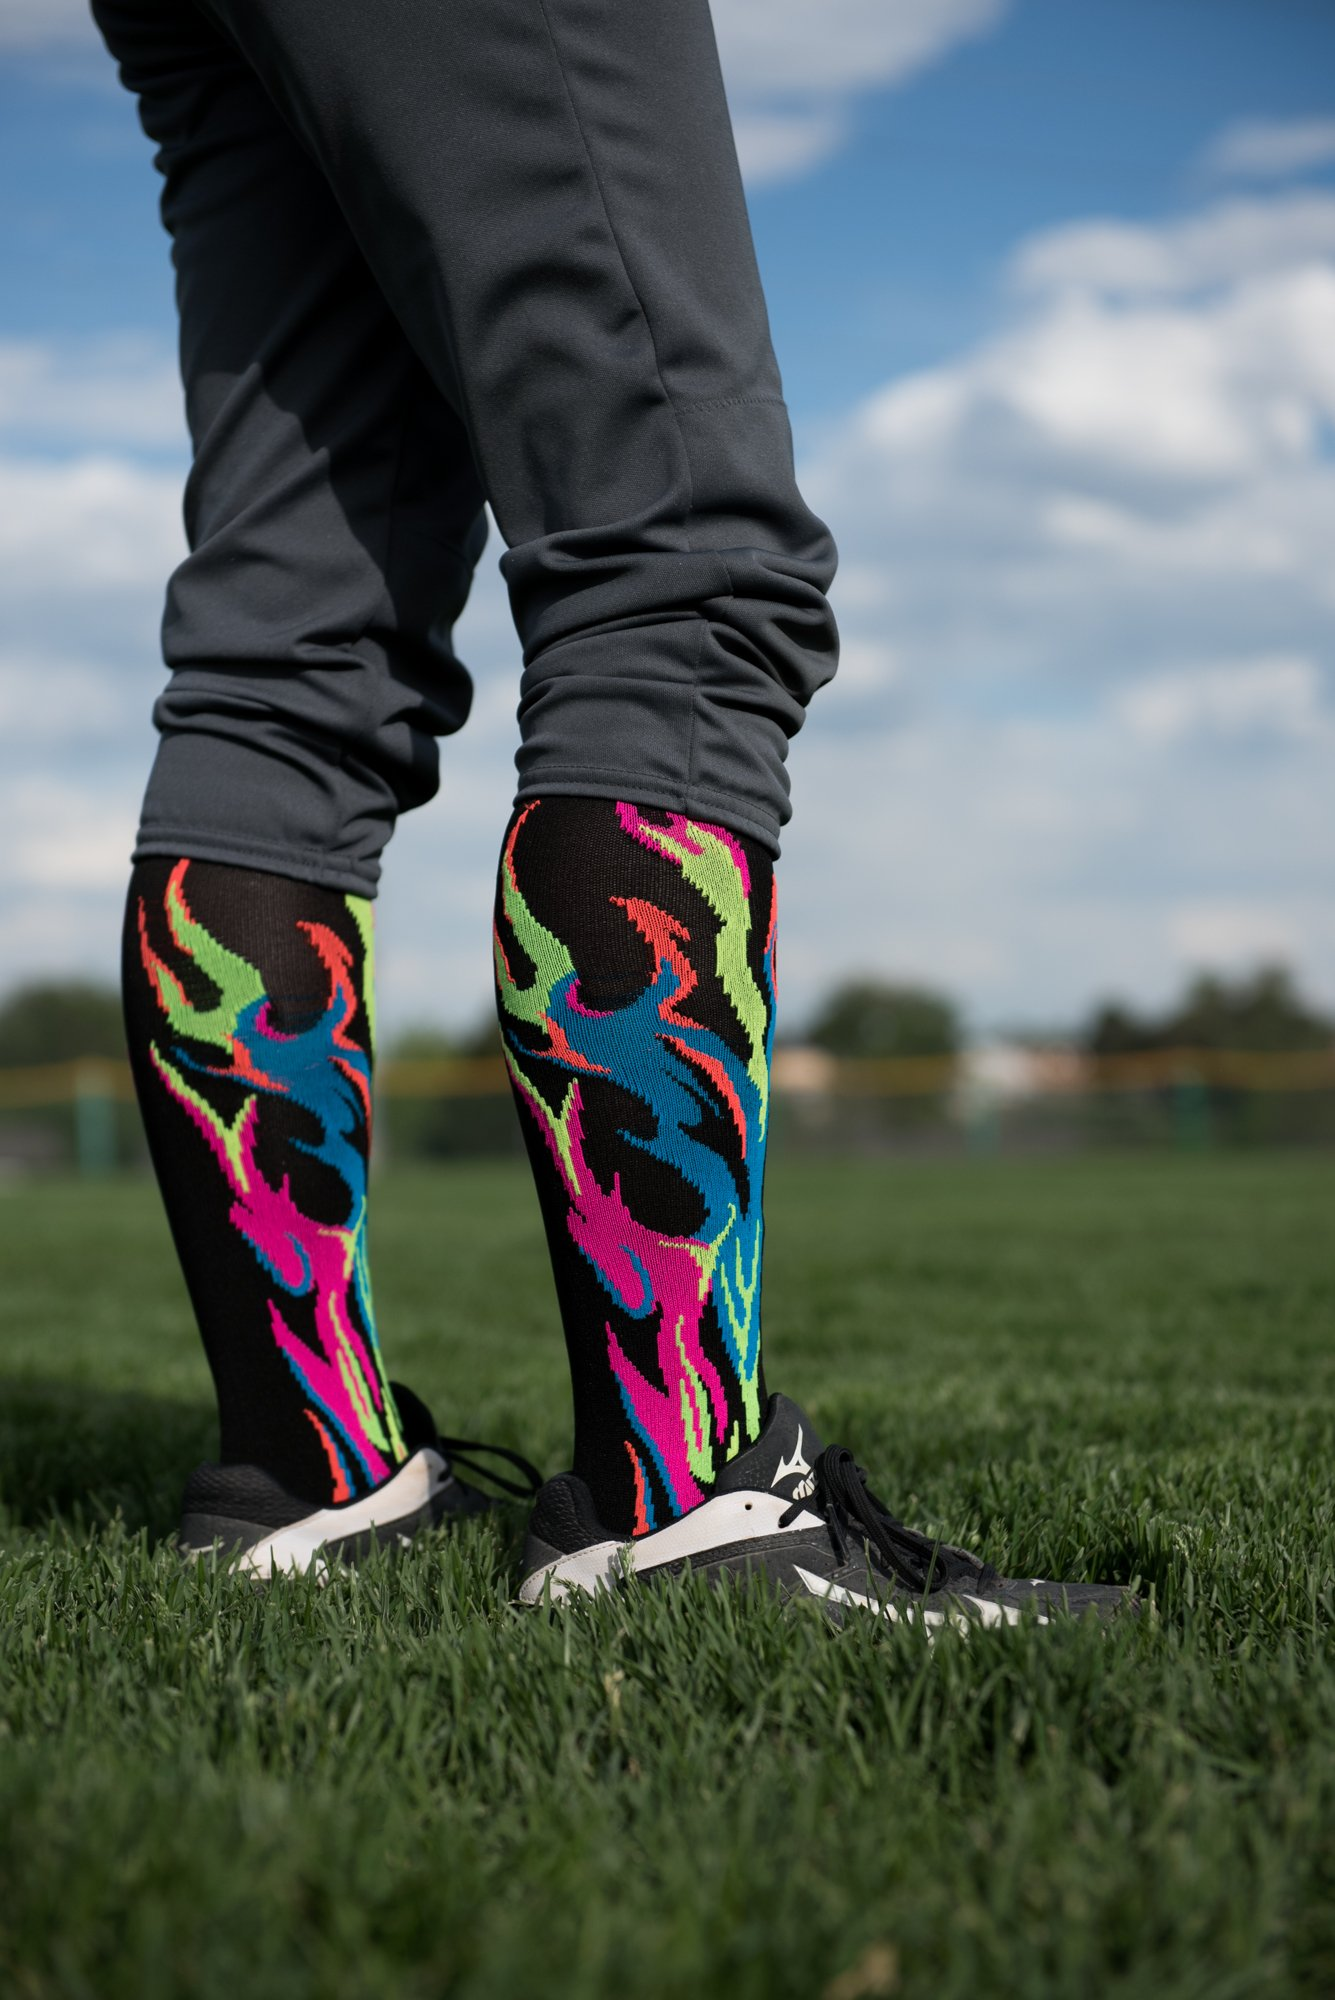 MadSportsStuff Flame Socks Athletic Over The Calf Socks (Multiple Colors) 7